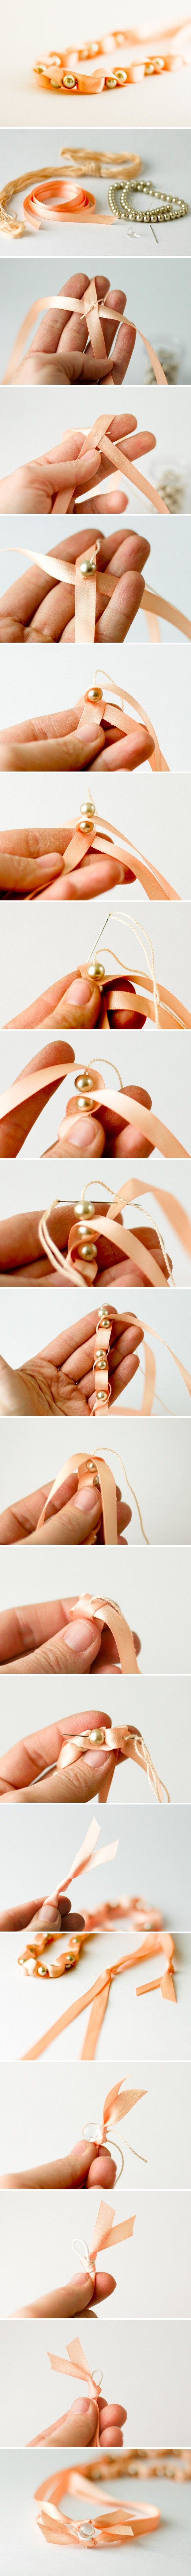 Day 16: Twisted Pearls - a diy pearl necklace                                                                                                                                                                                 More